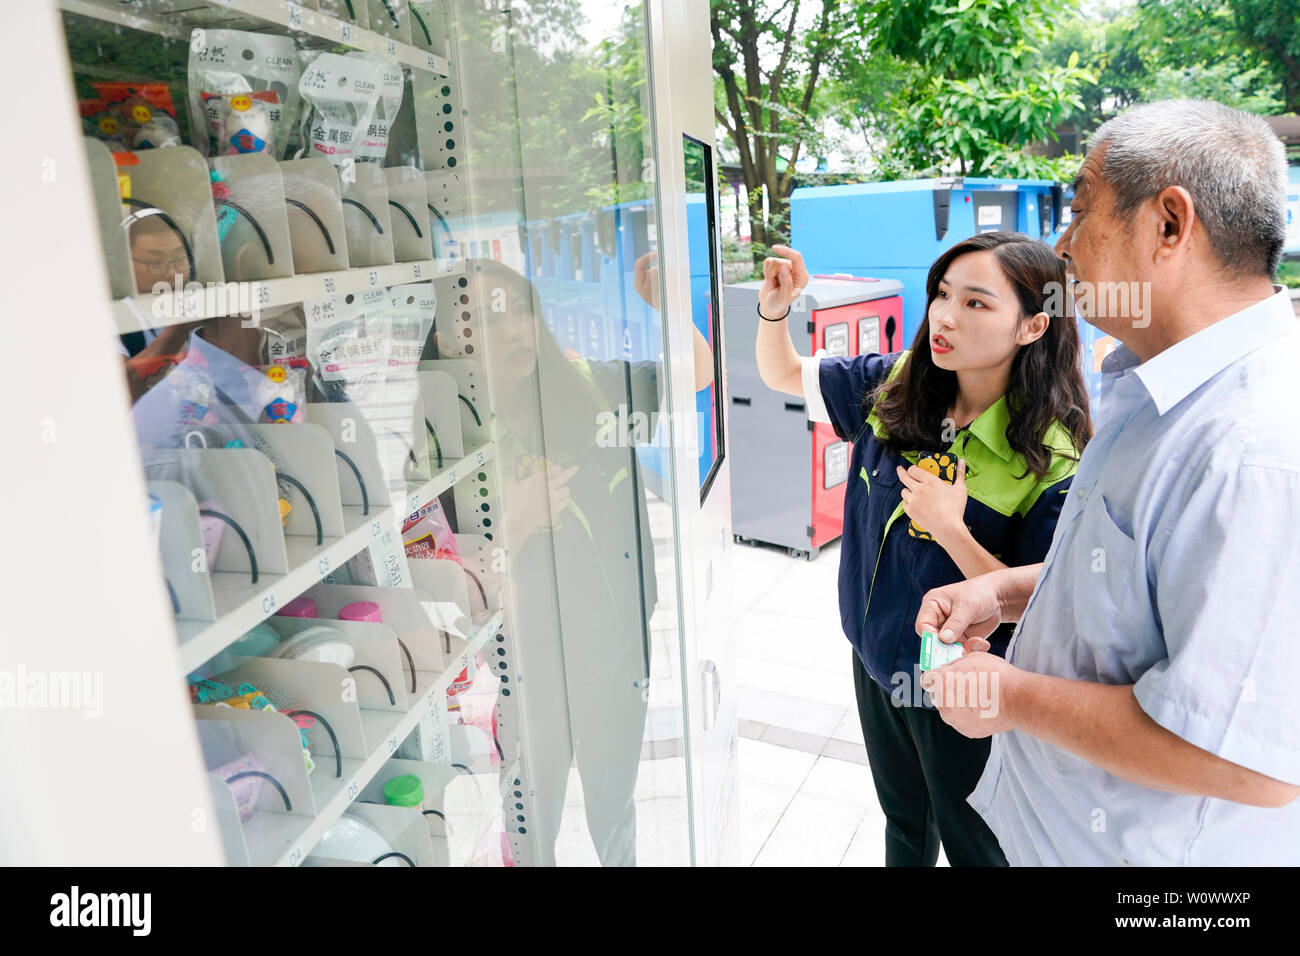 Chongqing, China. 27th June, 2019. Garbage classification inspector of Chongqing Environment & Sanitation Group Lu Xing (L) instructs a resident to redeem commodities with points earned from garbage classification at a community in Jiulongpo District in Chongqing, southwest China, June 27, 2019. Chongqing has been striving to promote garbage sorting in recent years. A garbage classification system has covered 680,000 households from 1,796 communities of 39 streets and towns in the downtown area of Chongqing. Credit: Liu Chan/Xinhua/Alamy Live News - Stock Image